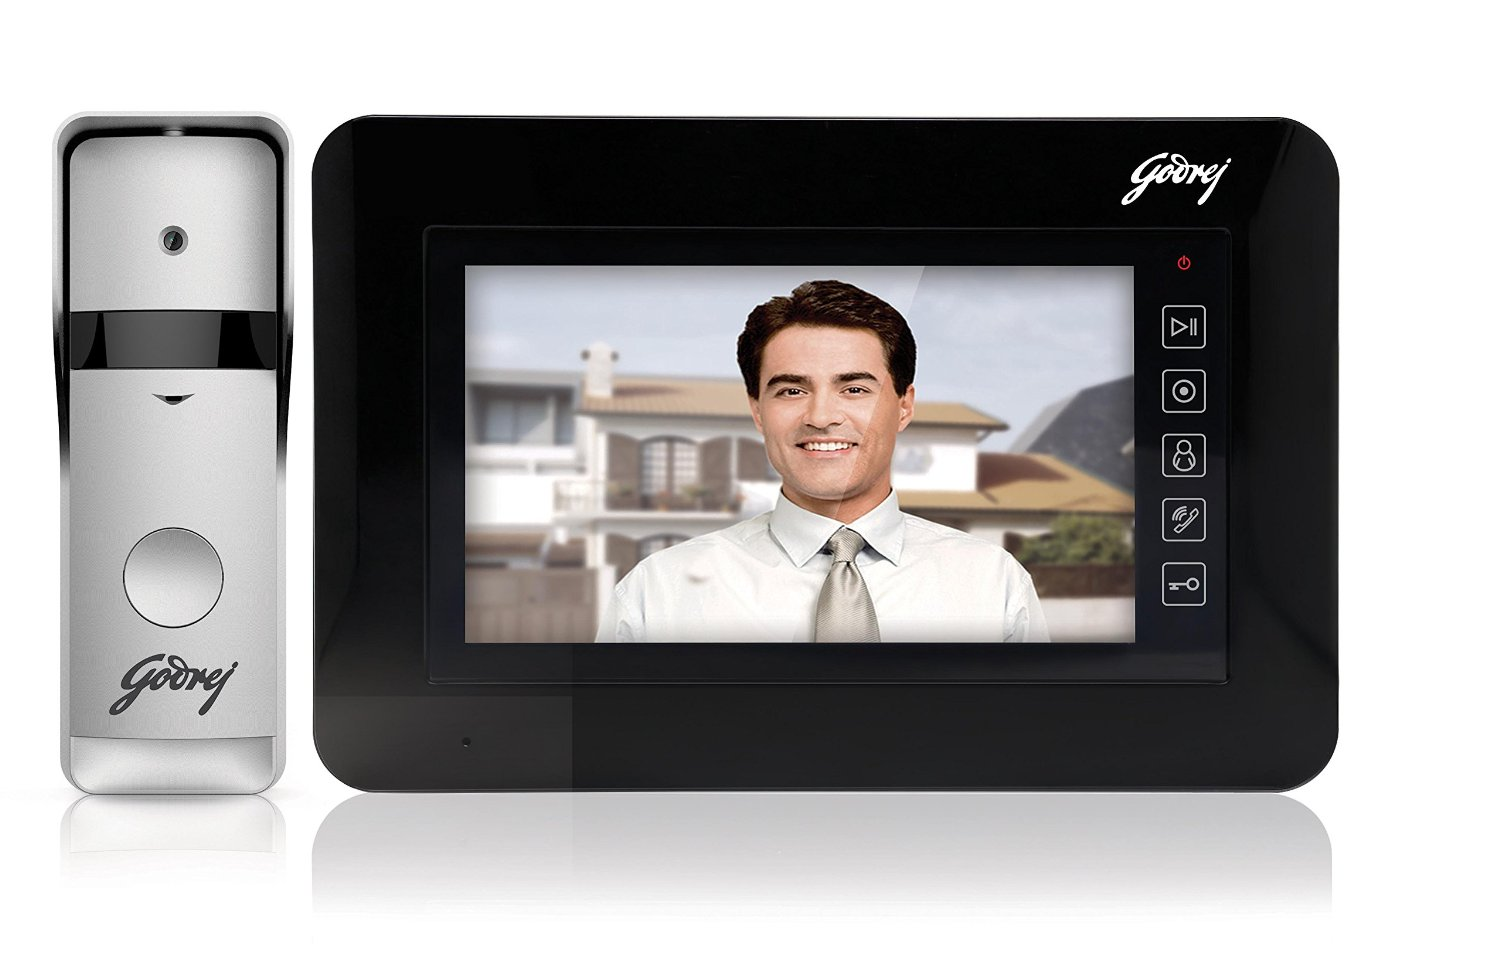 Godrej See Thru ST 7  sc 1 st  CRP Automations & Video Door Phones - CRP Automations - CCTV Installation / Home ...